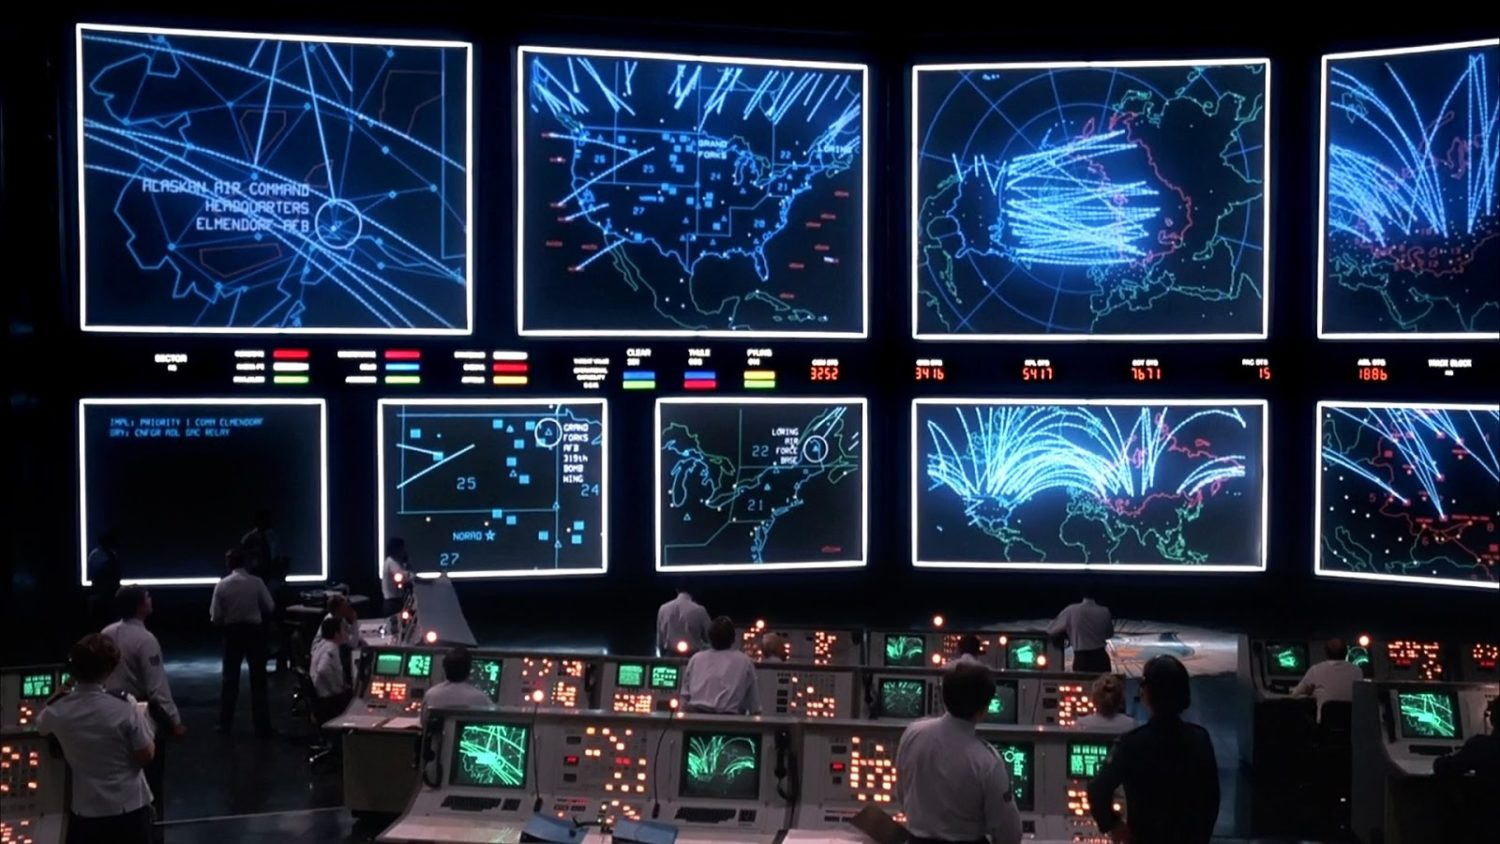 WOPR and the NORAD command centre in WarGames (1983)